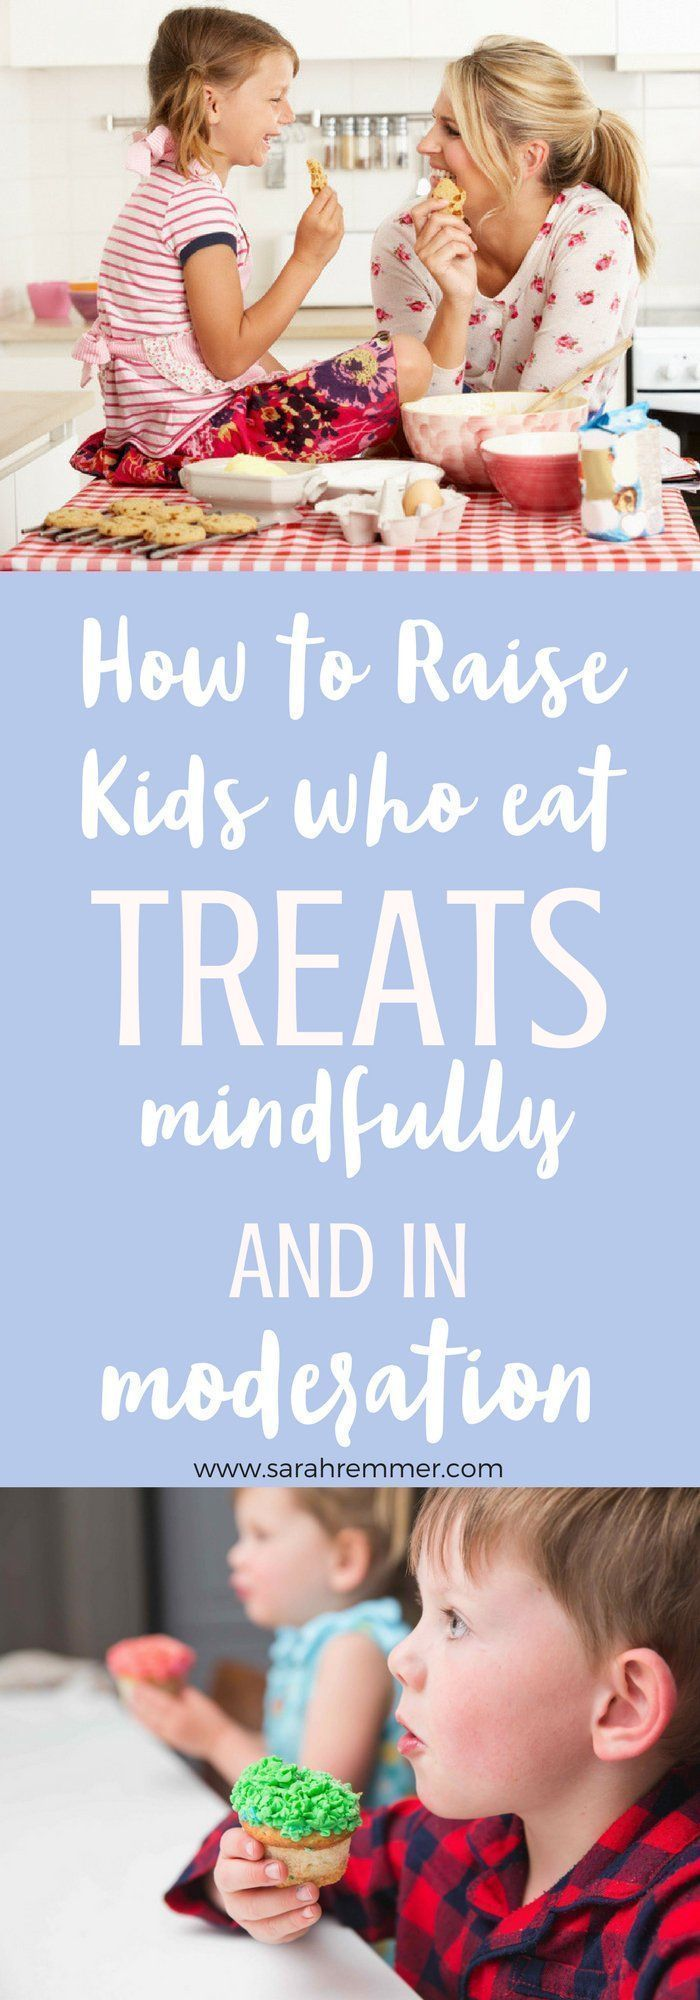 5 Secrets to Raising Kids Who Eat Treats Mindfully and in Moderation is part of Raising kids - My kids take after their mom  they love chocolate! For years, I've have a square or two of dark chocolate after lunch and supper  For me, chocolate is the perfect end to a mealthings don't seem quite right without it  And over the years, I've learned how to enjoy it mindfully  With Easter righ